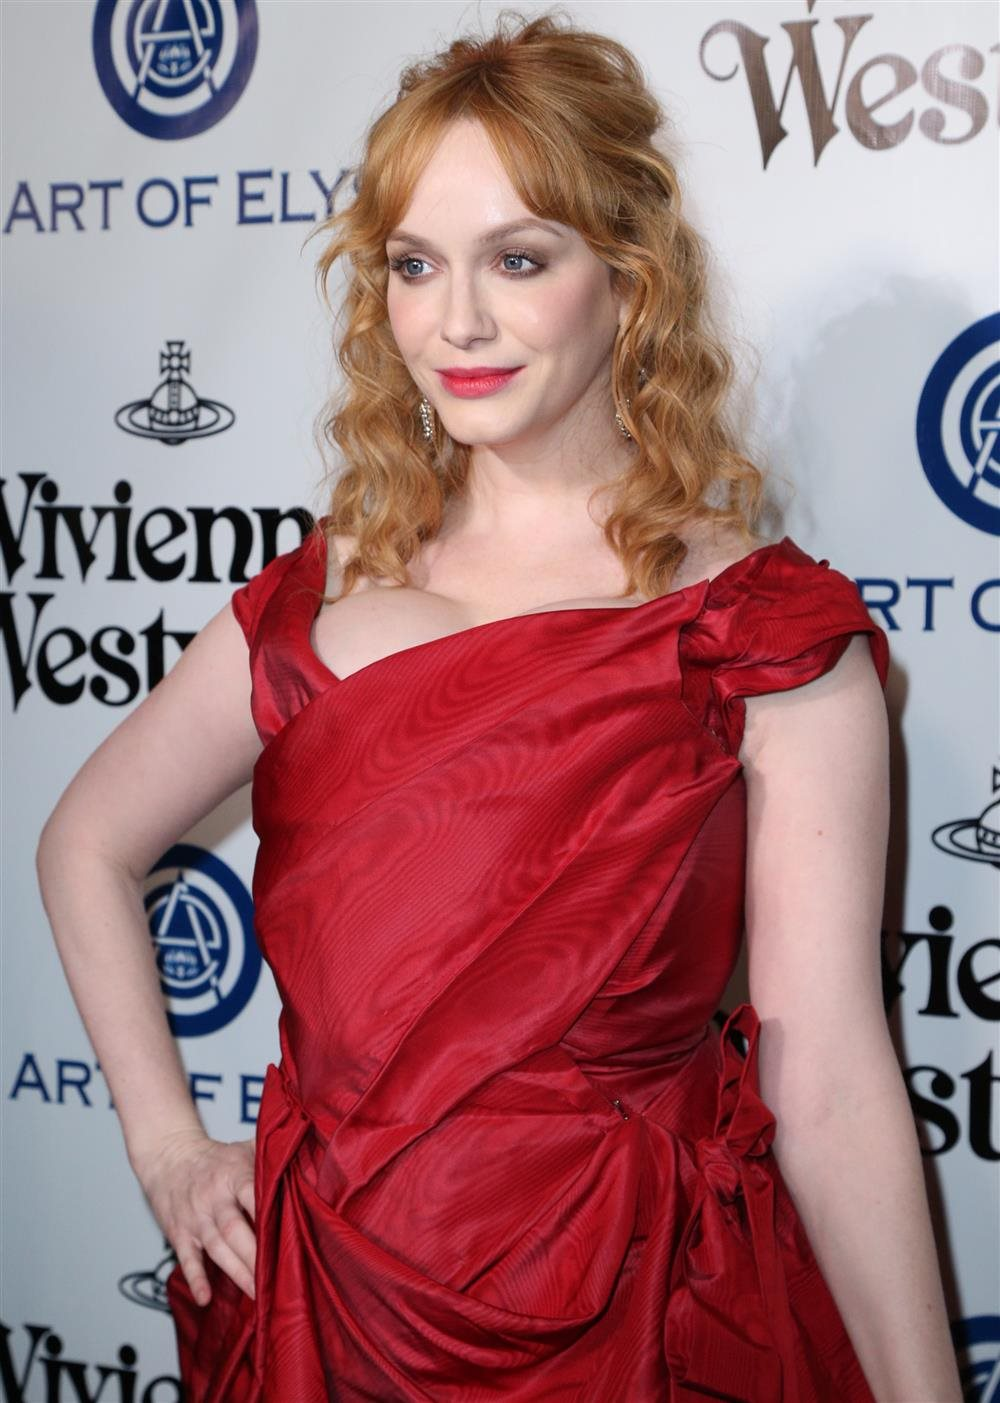 DL u298067 066. Christina Hendricks